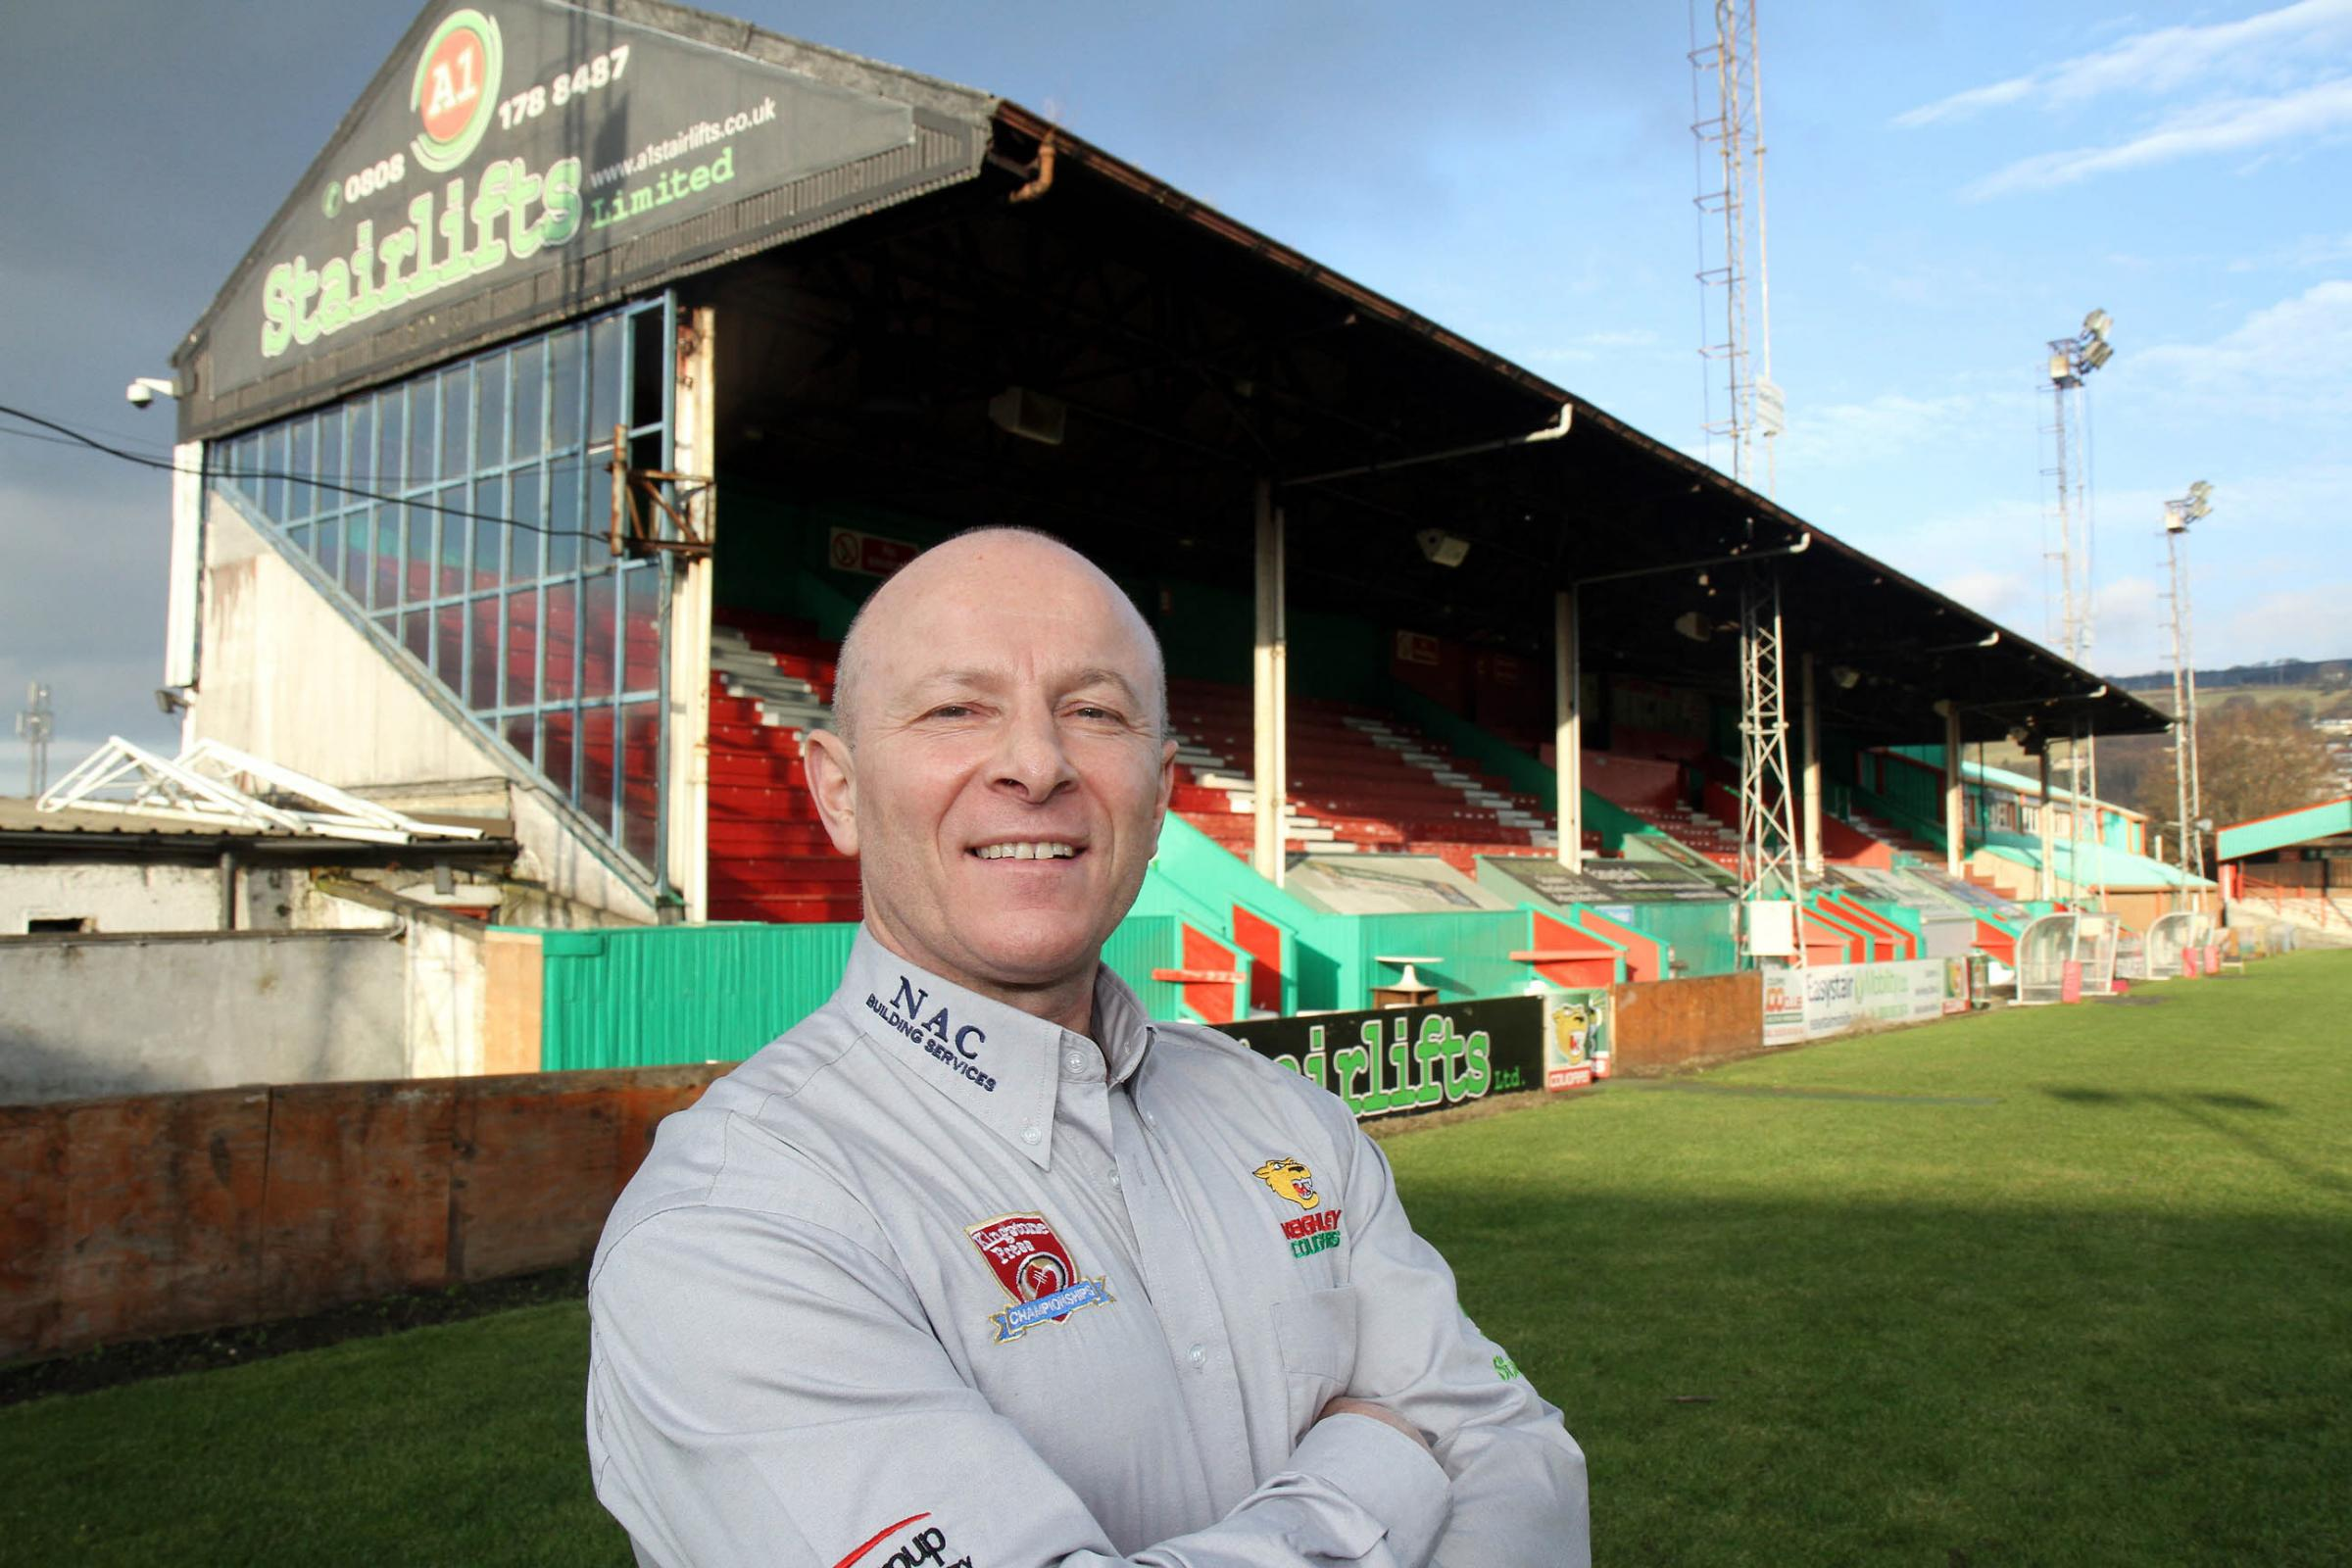 Keighley cougars fans forum